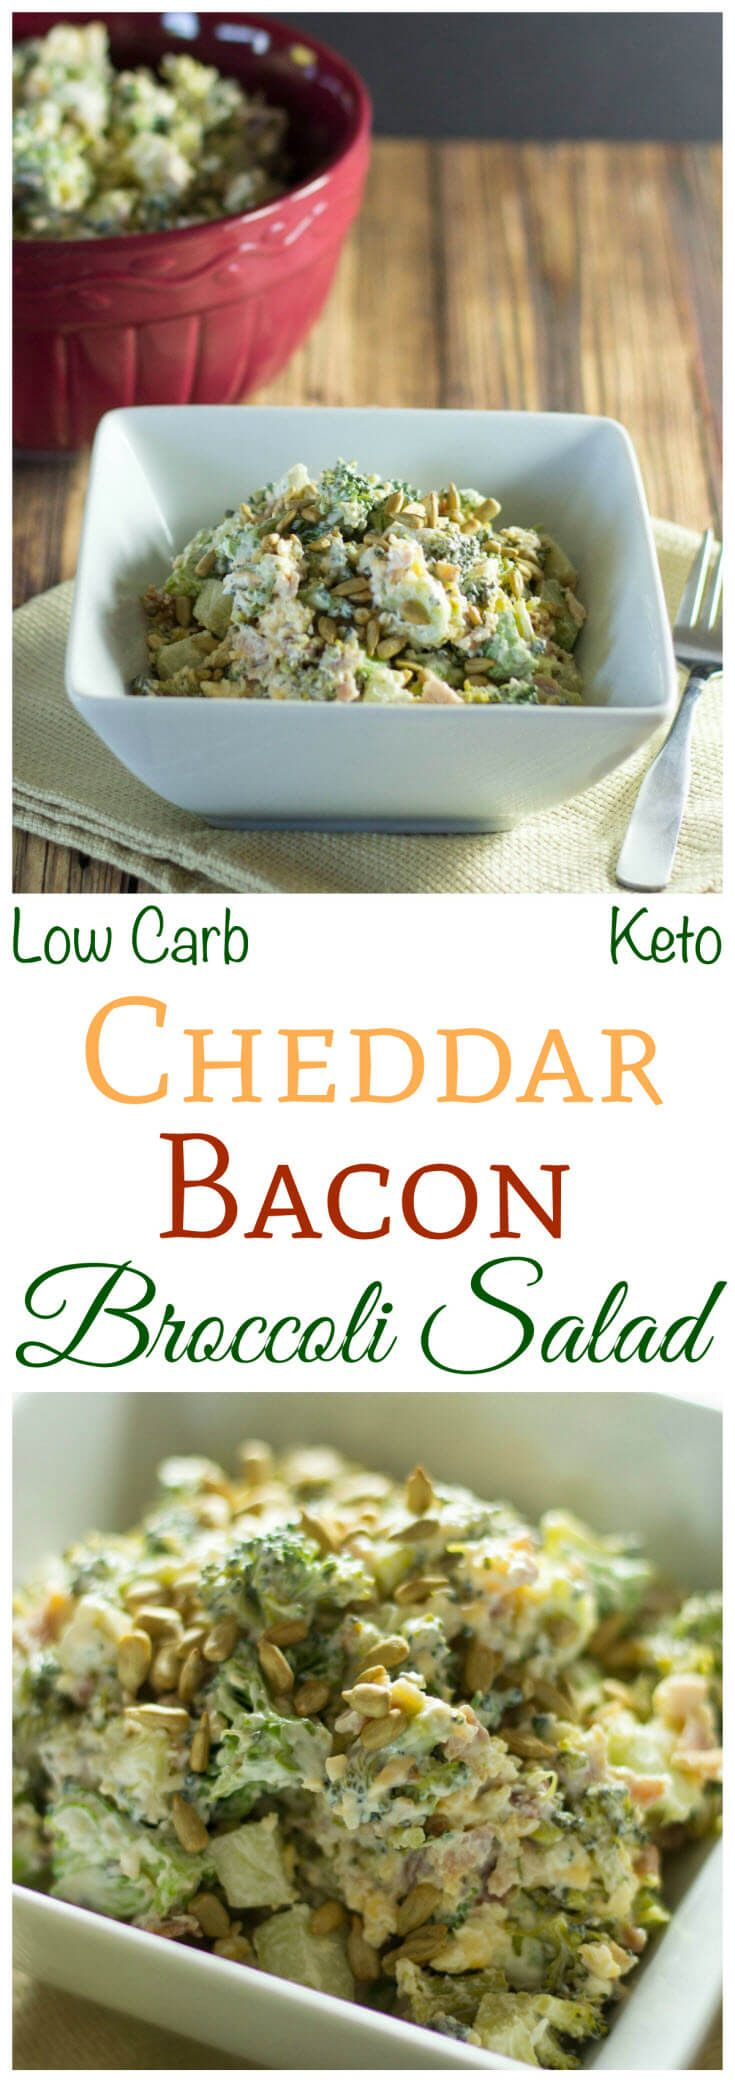 This simple low carb broccoli salad is great for a summer picnic or potluck. The tangy creamy dressing makes this broccoli bacon cheese salad a winner. | LowCarbYum.com via @Low Carb Yum | Gluten Free & Low Carb Recipes